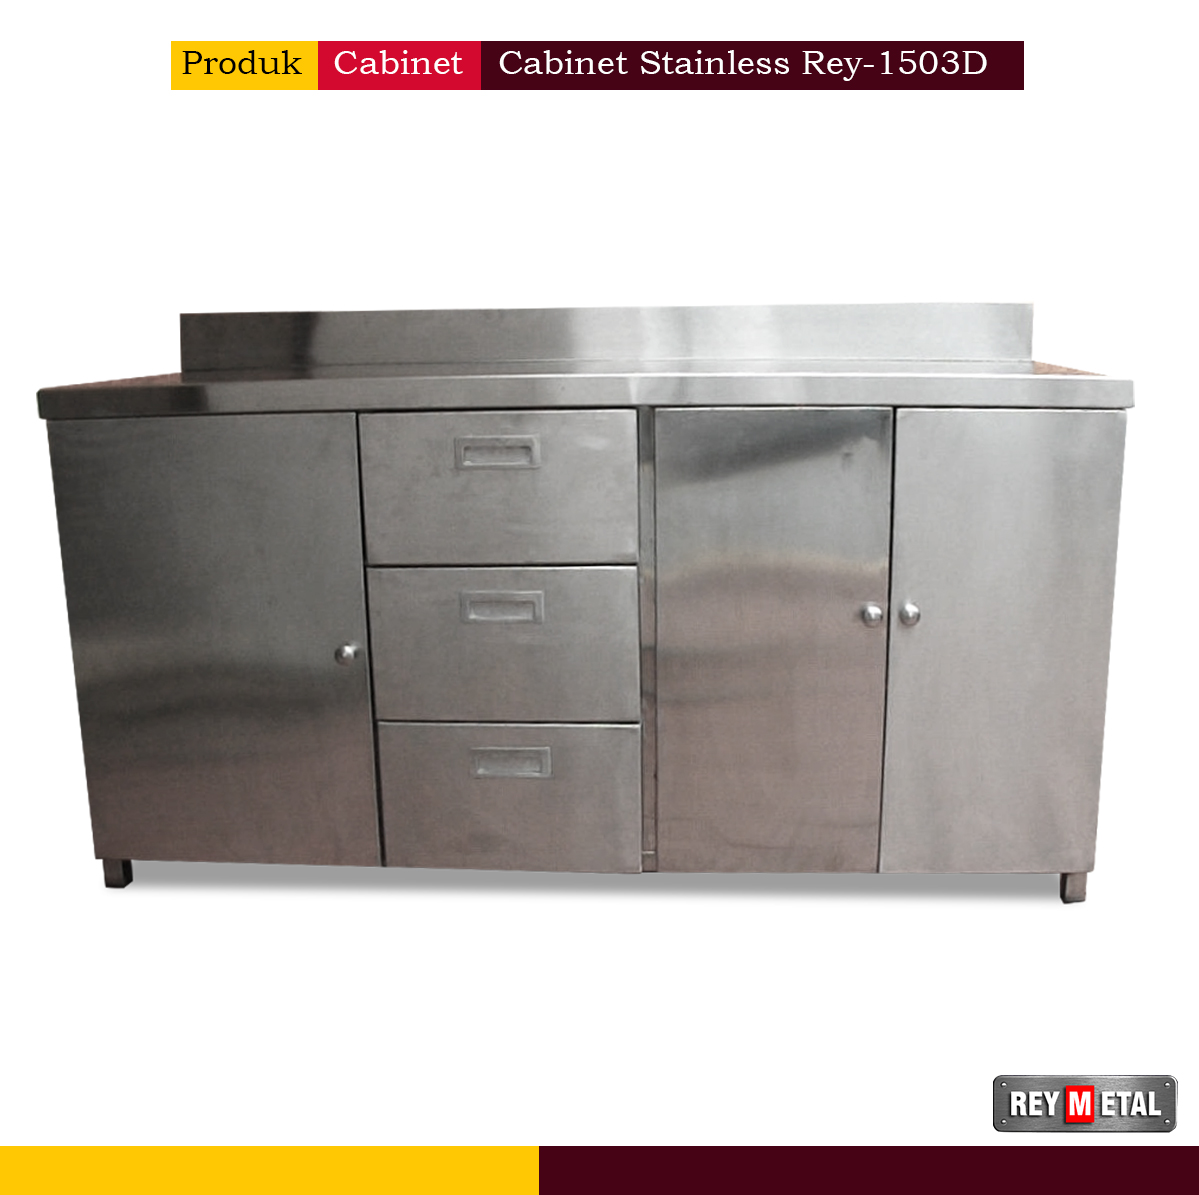 Cabinet Stainless Steel Rey-1503D